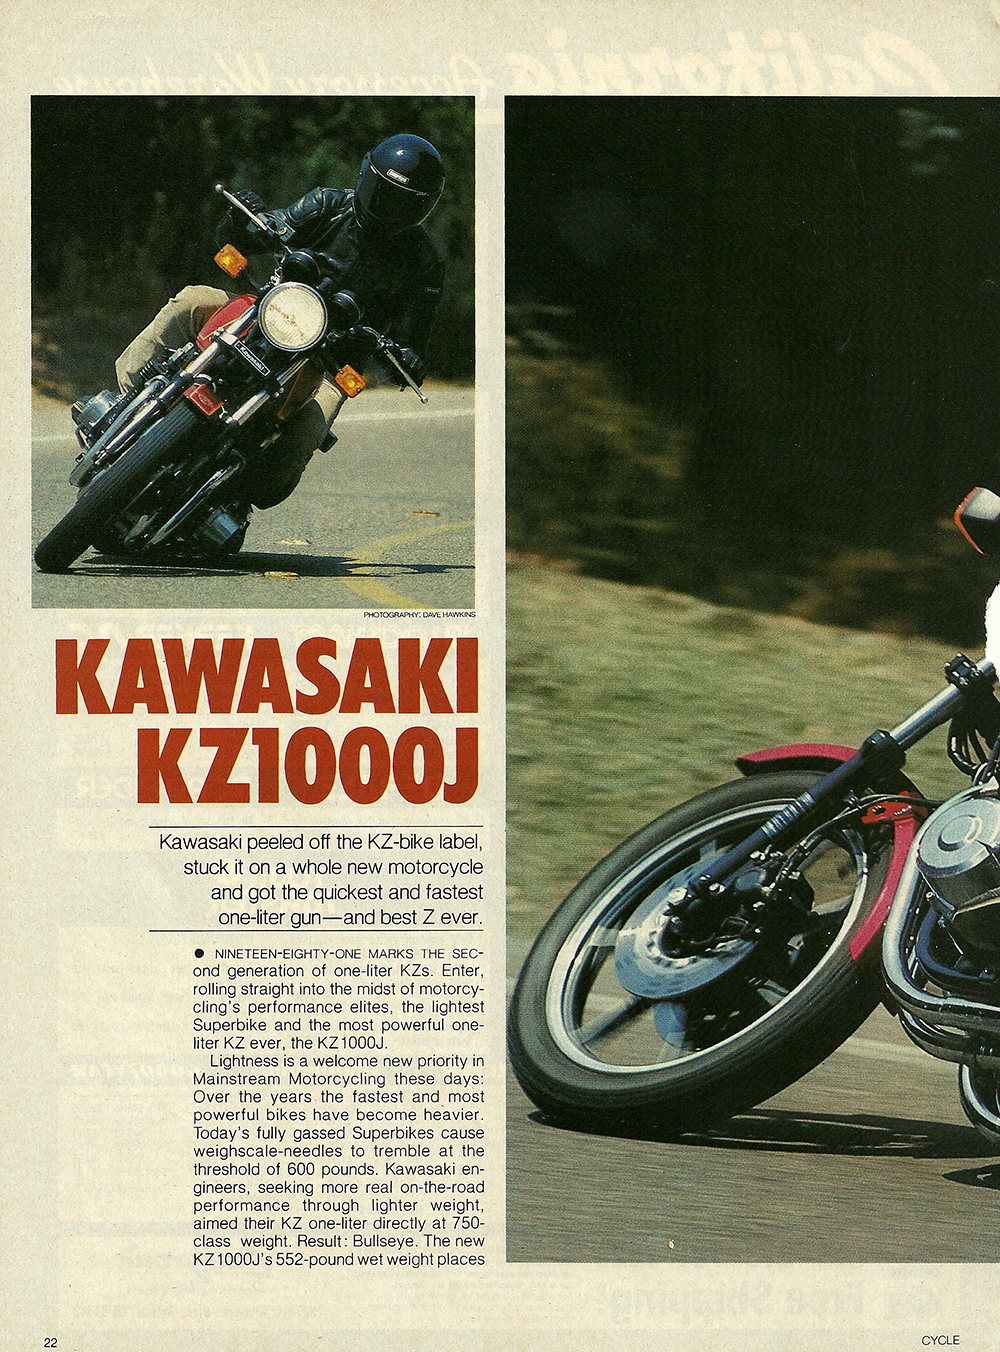 1981 Kawasaki KZ1000 J road test 01.jpg